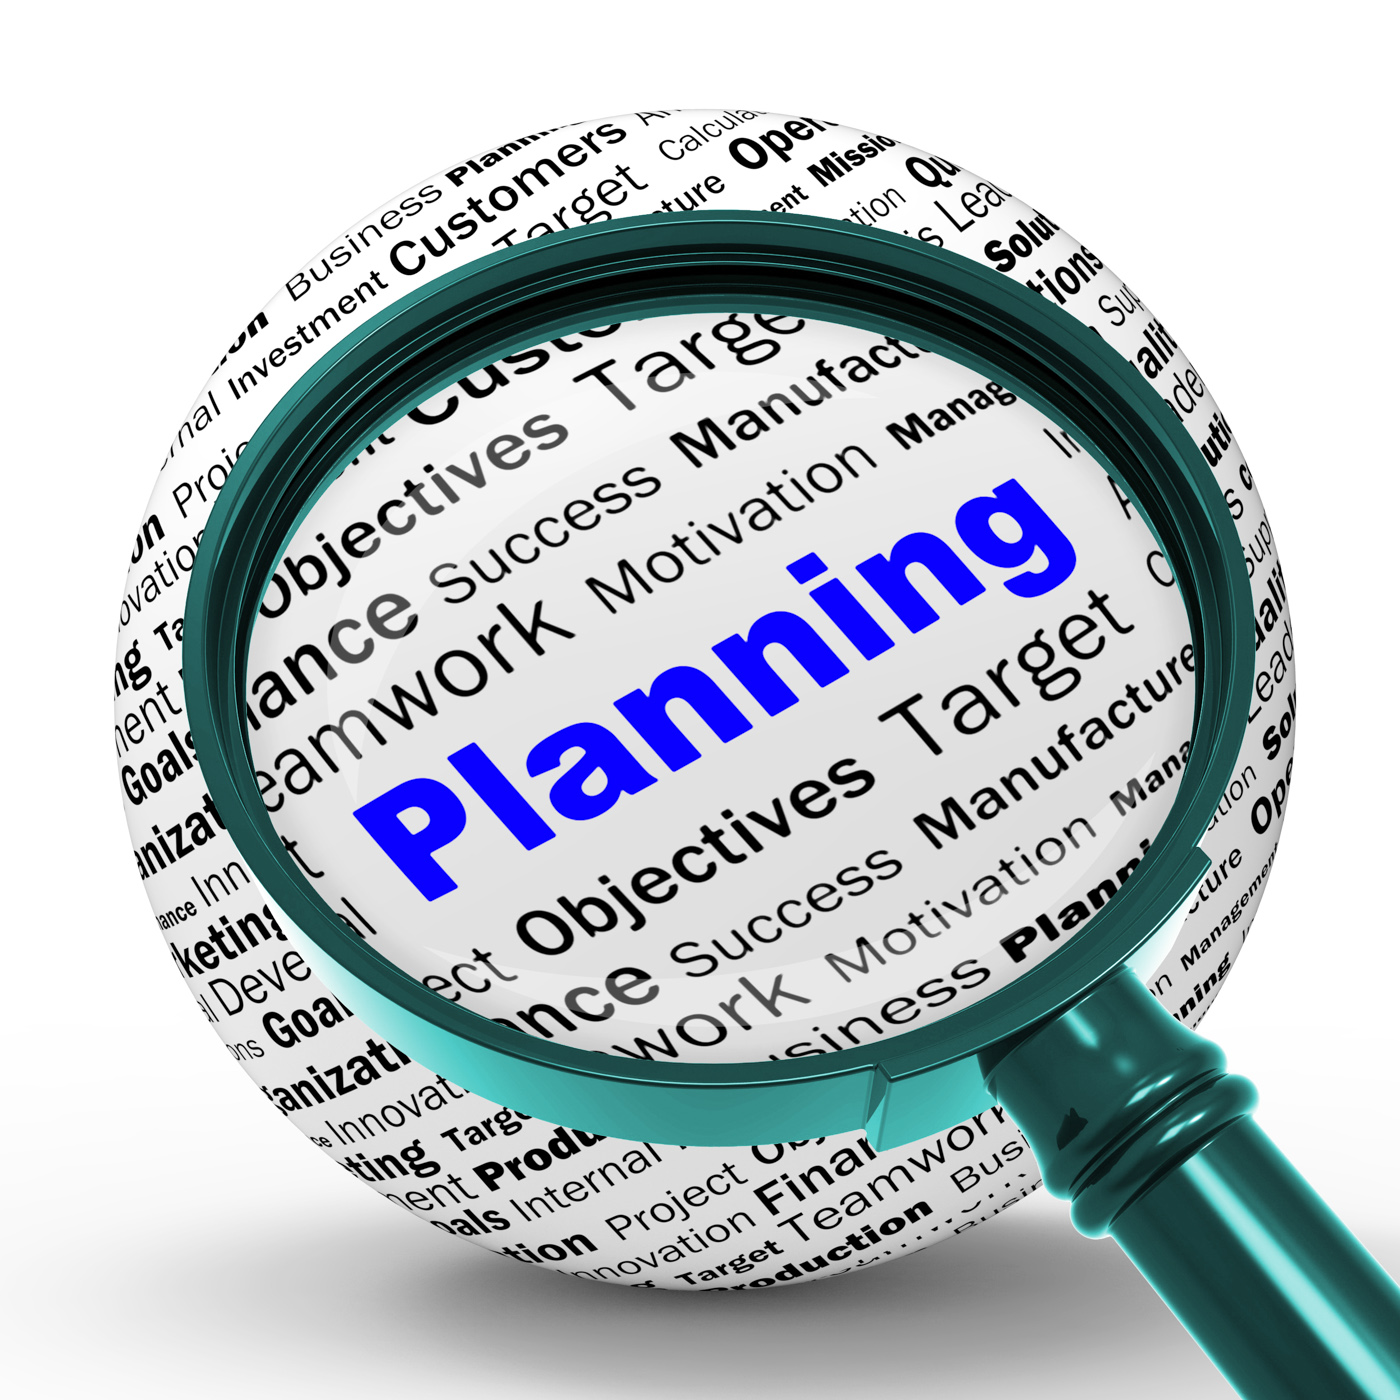 Planning Magnifier Definition Means Mission Planning Or Objectives, Aim, Aims, Aspirations, Aspire, HQ Photo